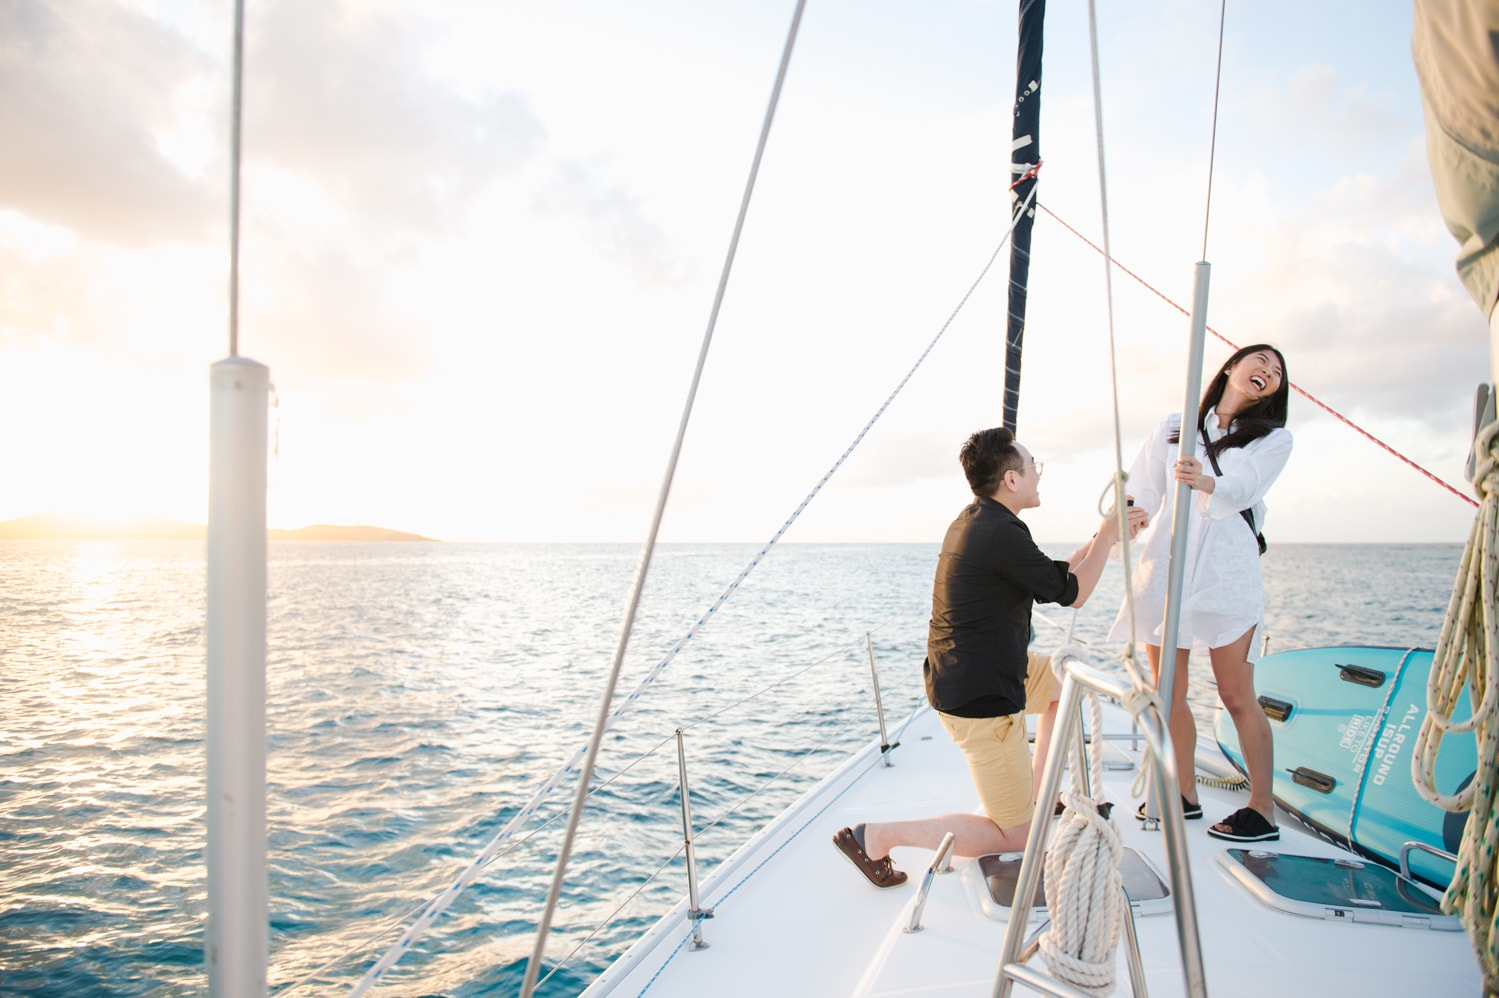 marriage proposal photos at a sailboat tour to Icacos Island by Puerto Rico wedding photographer Camille Fontz